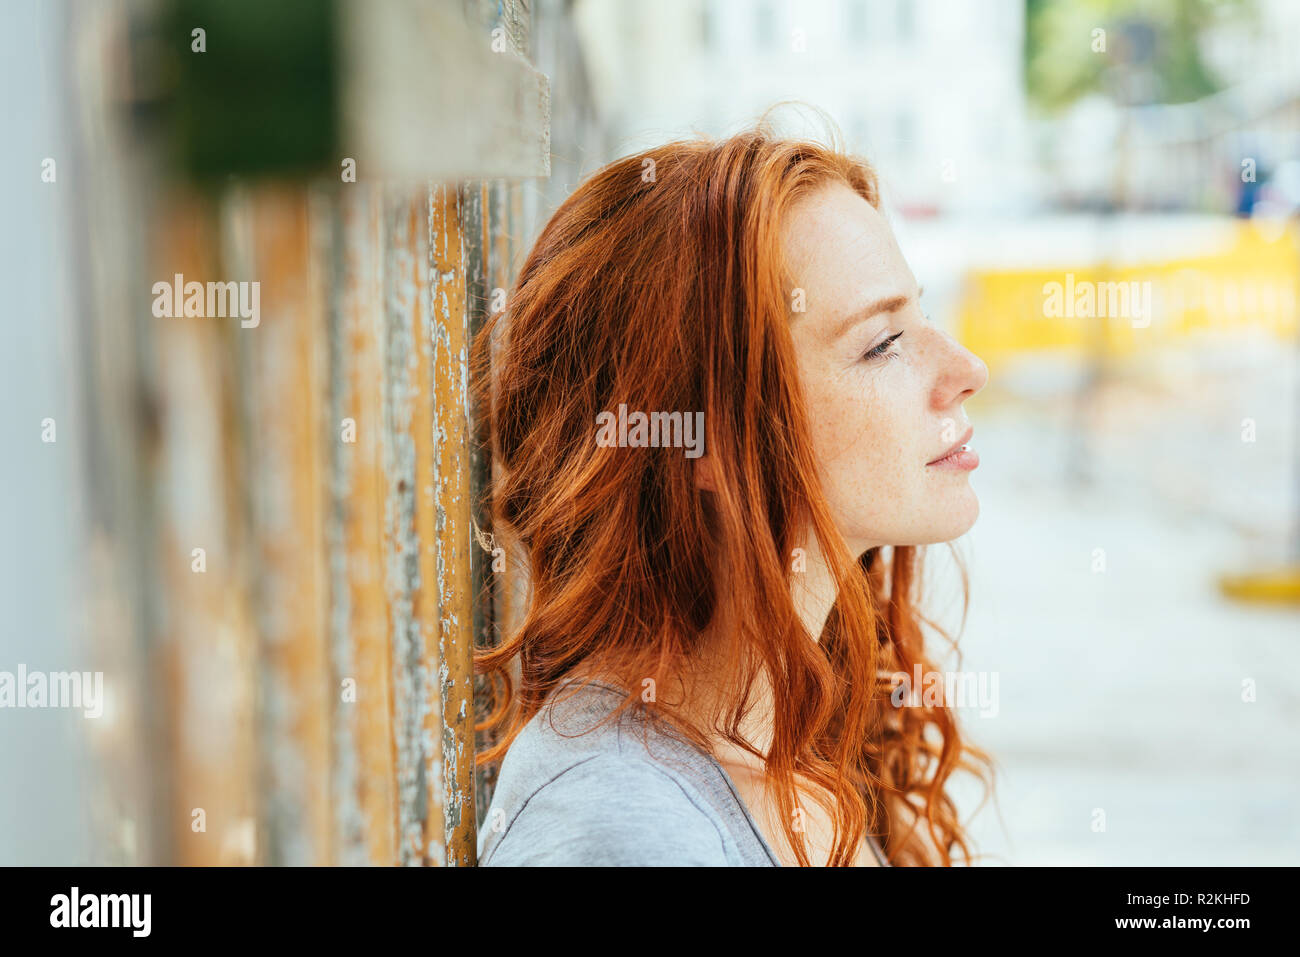 Thoughtful young woman with tousled red hair leaning against an urban wall staring ahead in a close up profile view on a high key background - Stock Image